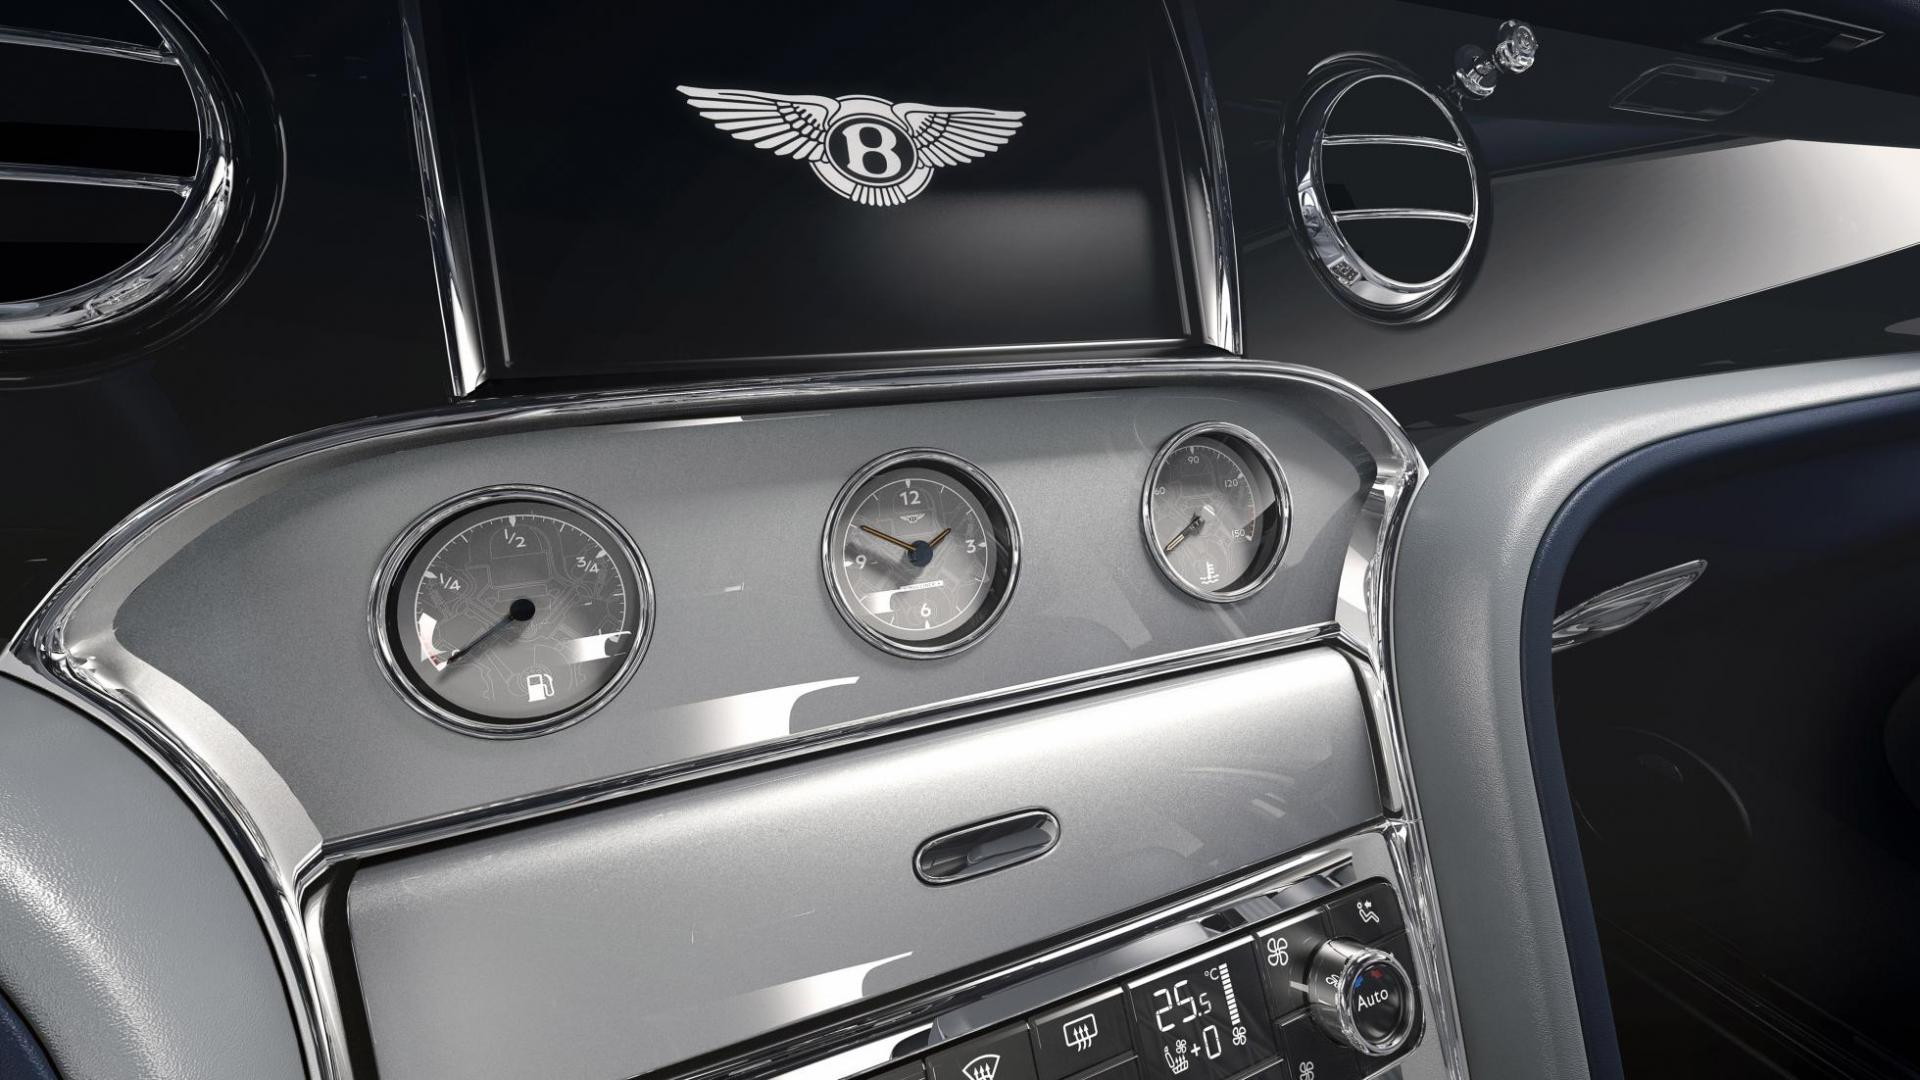 Bentley Mulsanne 6.75 Edition by Mulliner dashboard meters scherm interieur